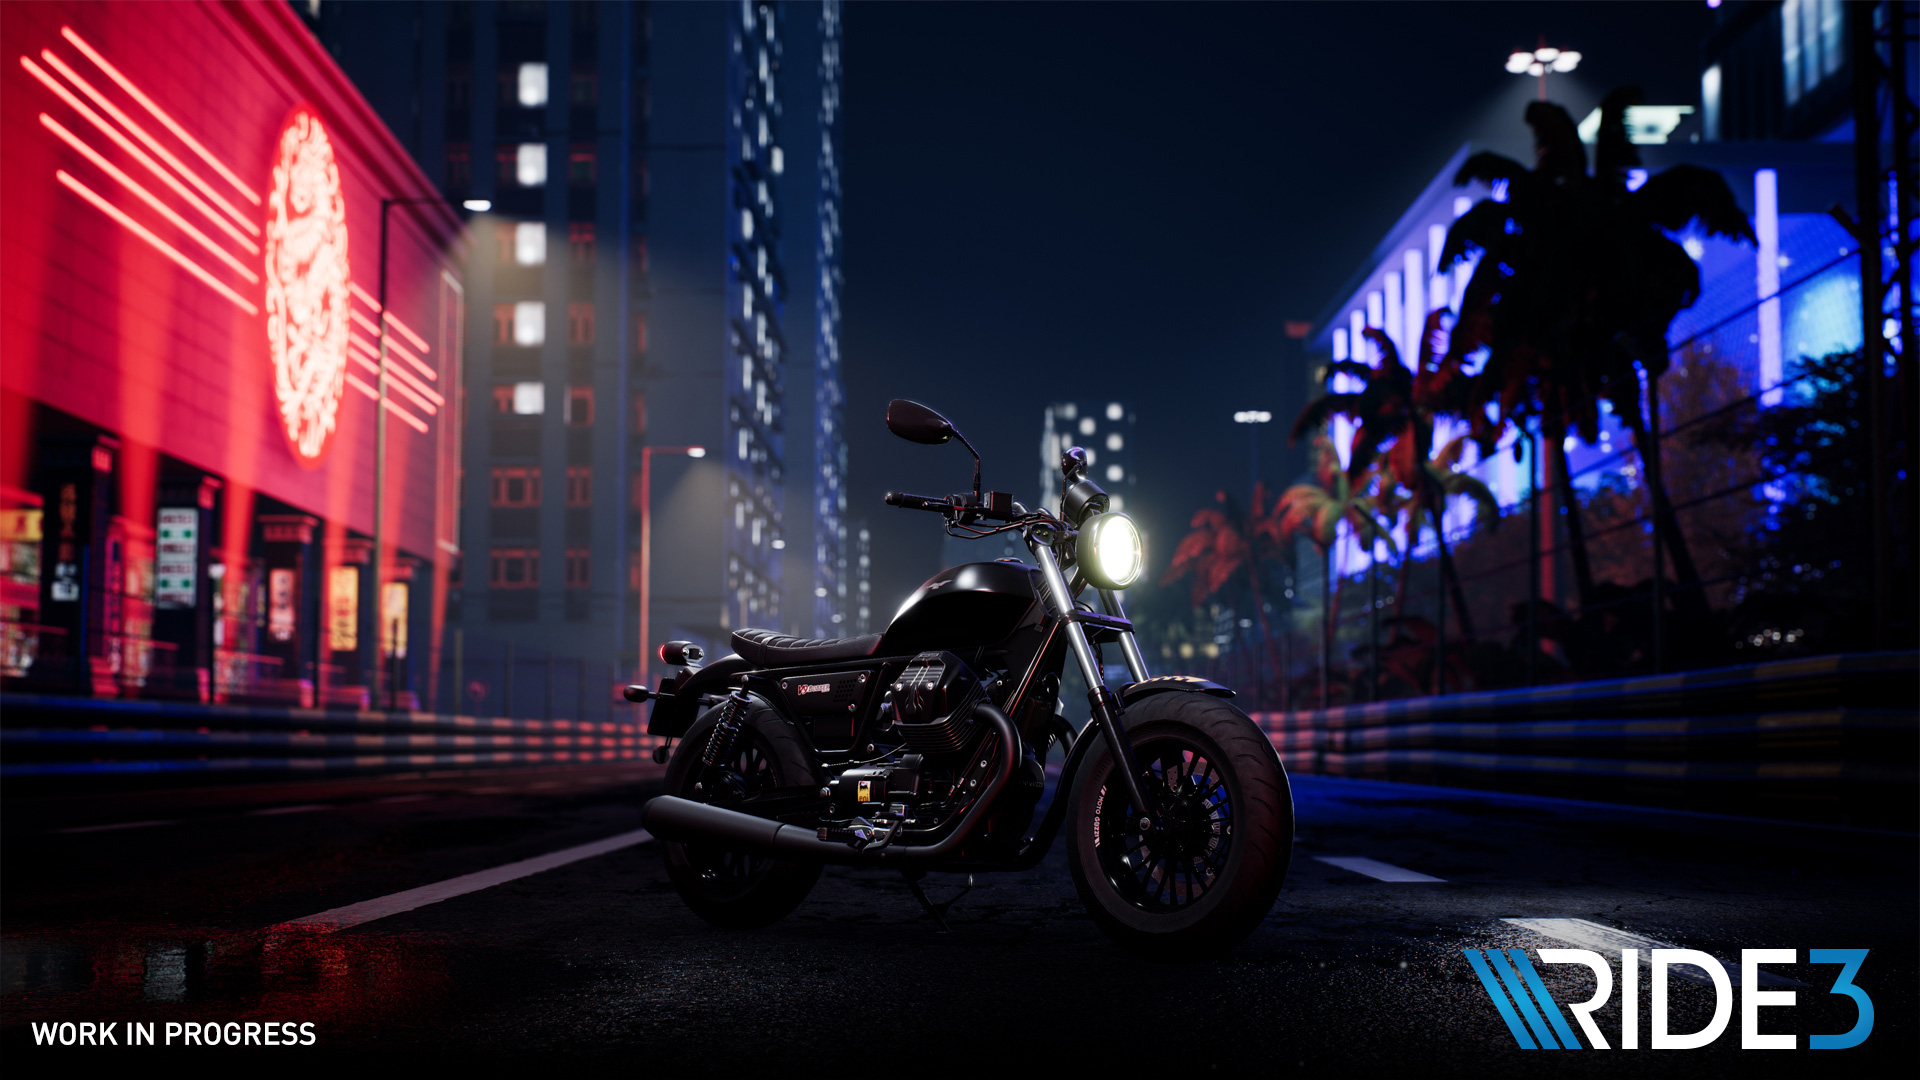 Racing Game RIDE 3 Confirmed For PC And Consoles; To Be Powered By UE4